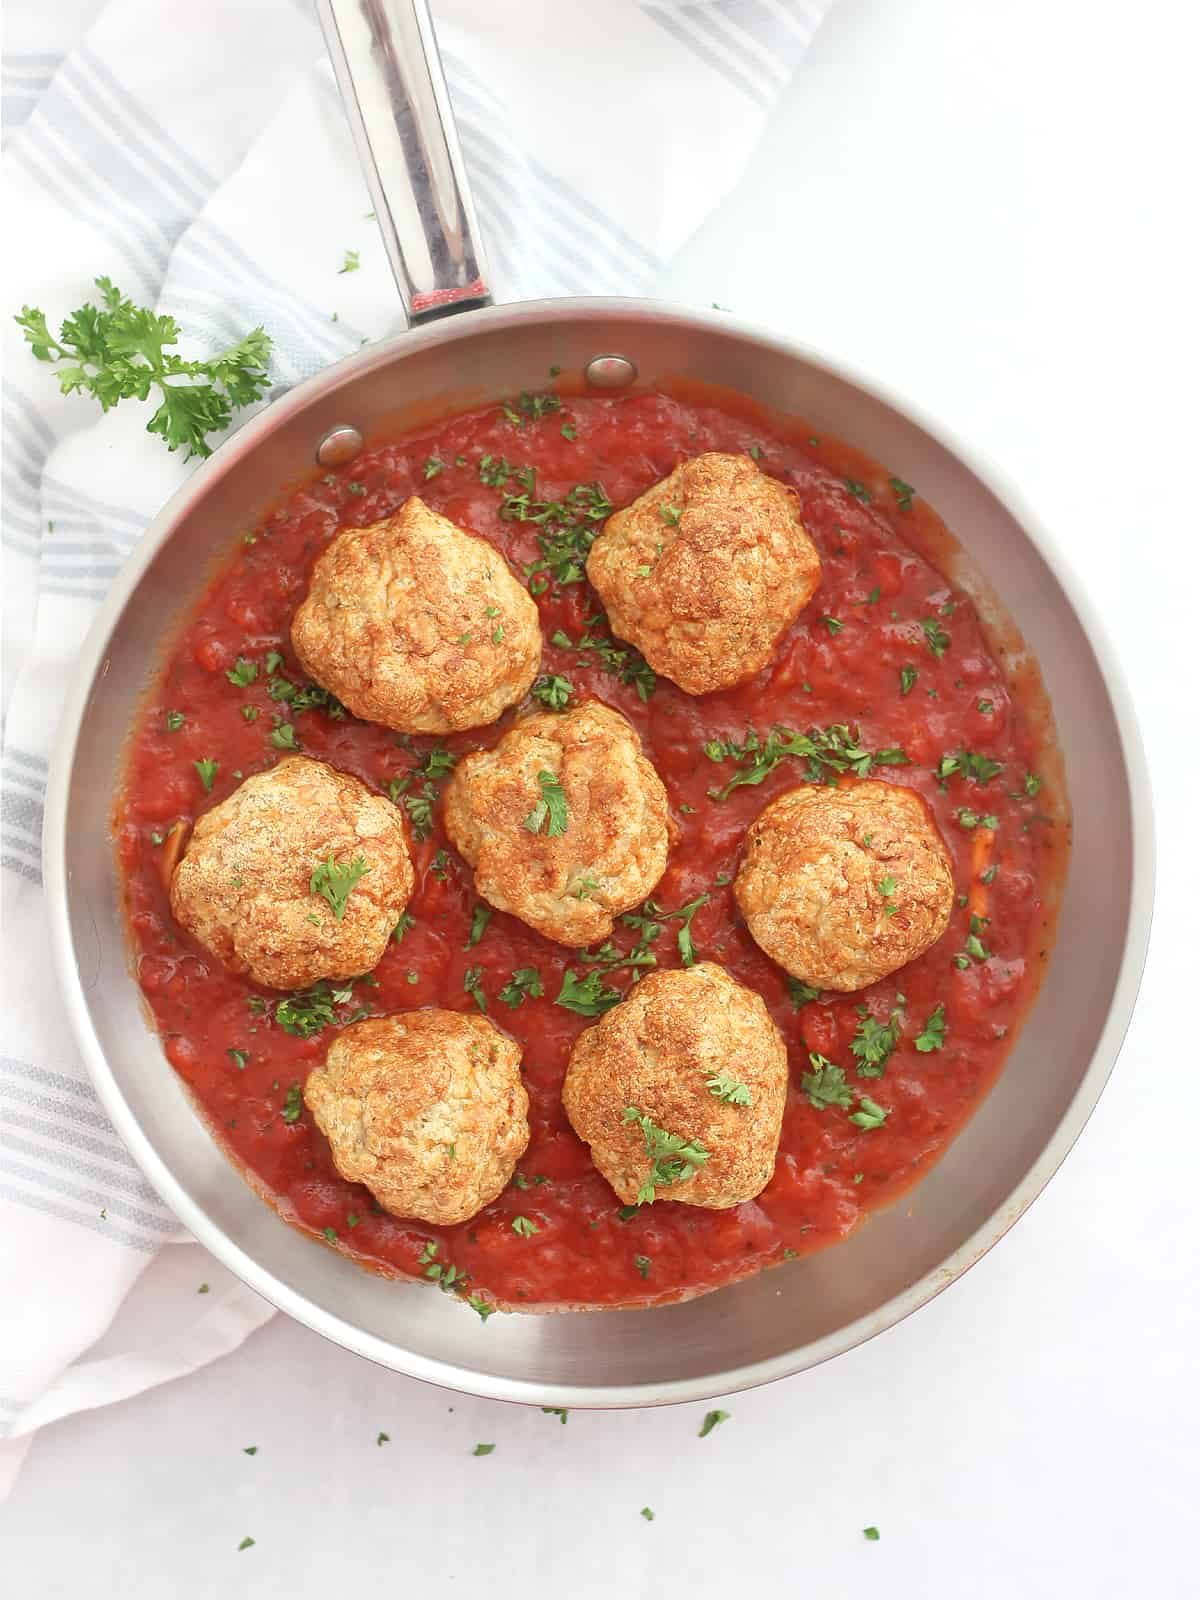 Overhead shot of seven chicken meatballs in a skillet with marinara sauce and garnished with parsley.